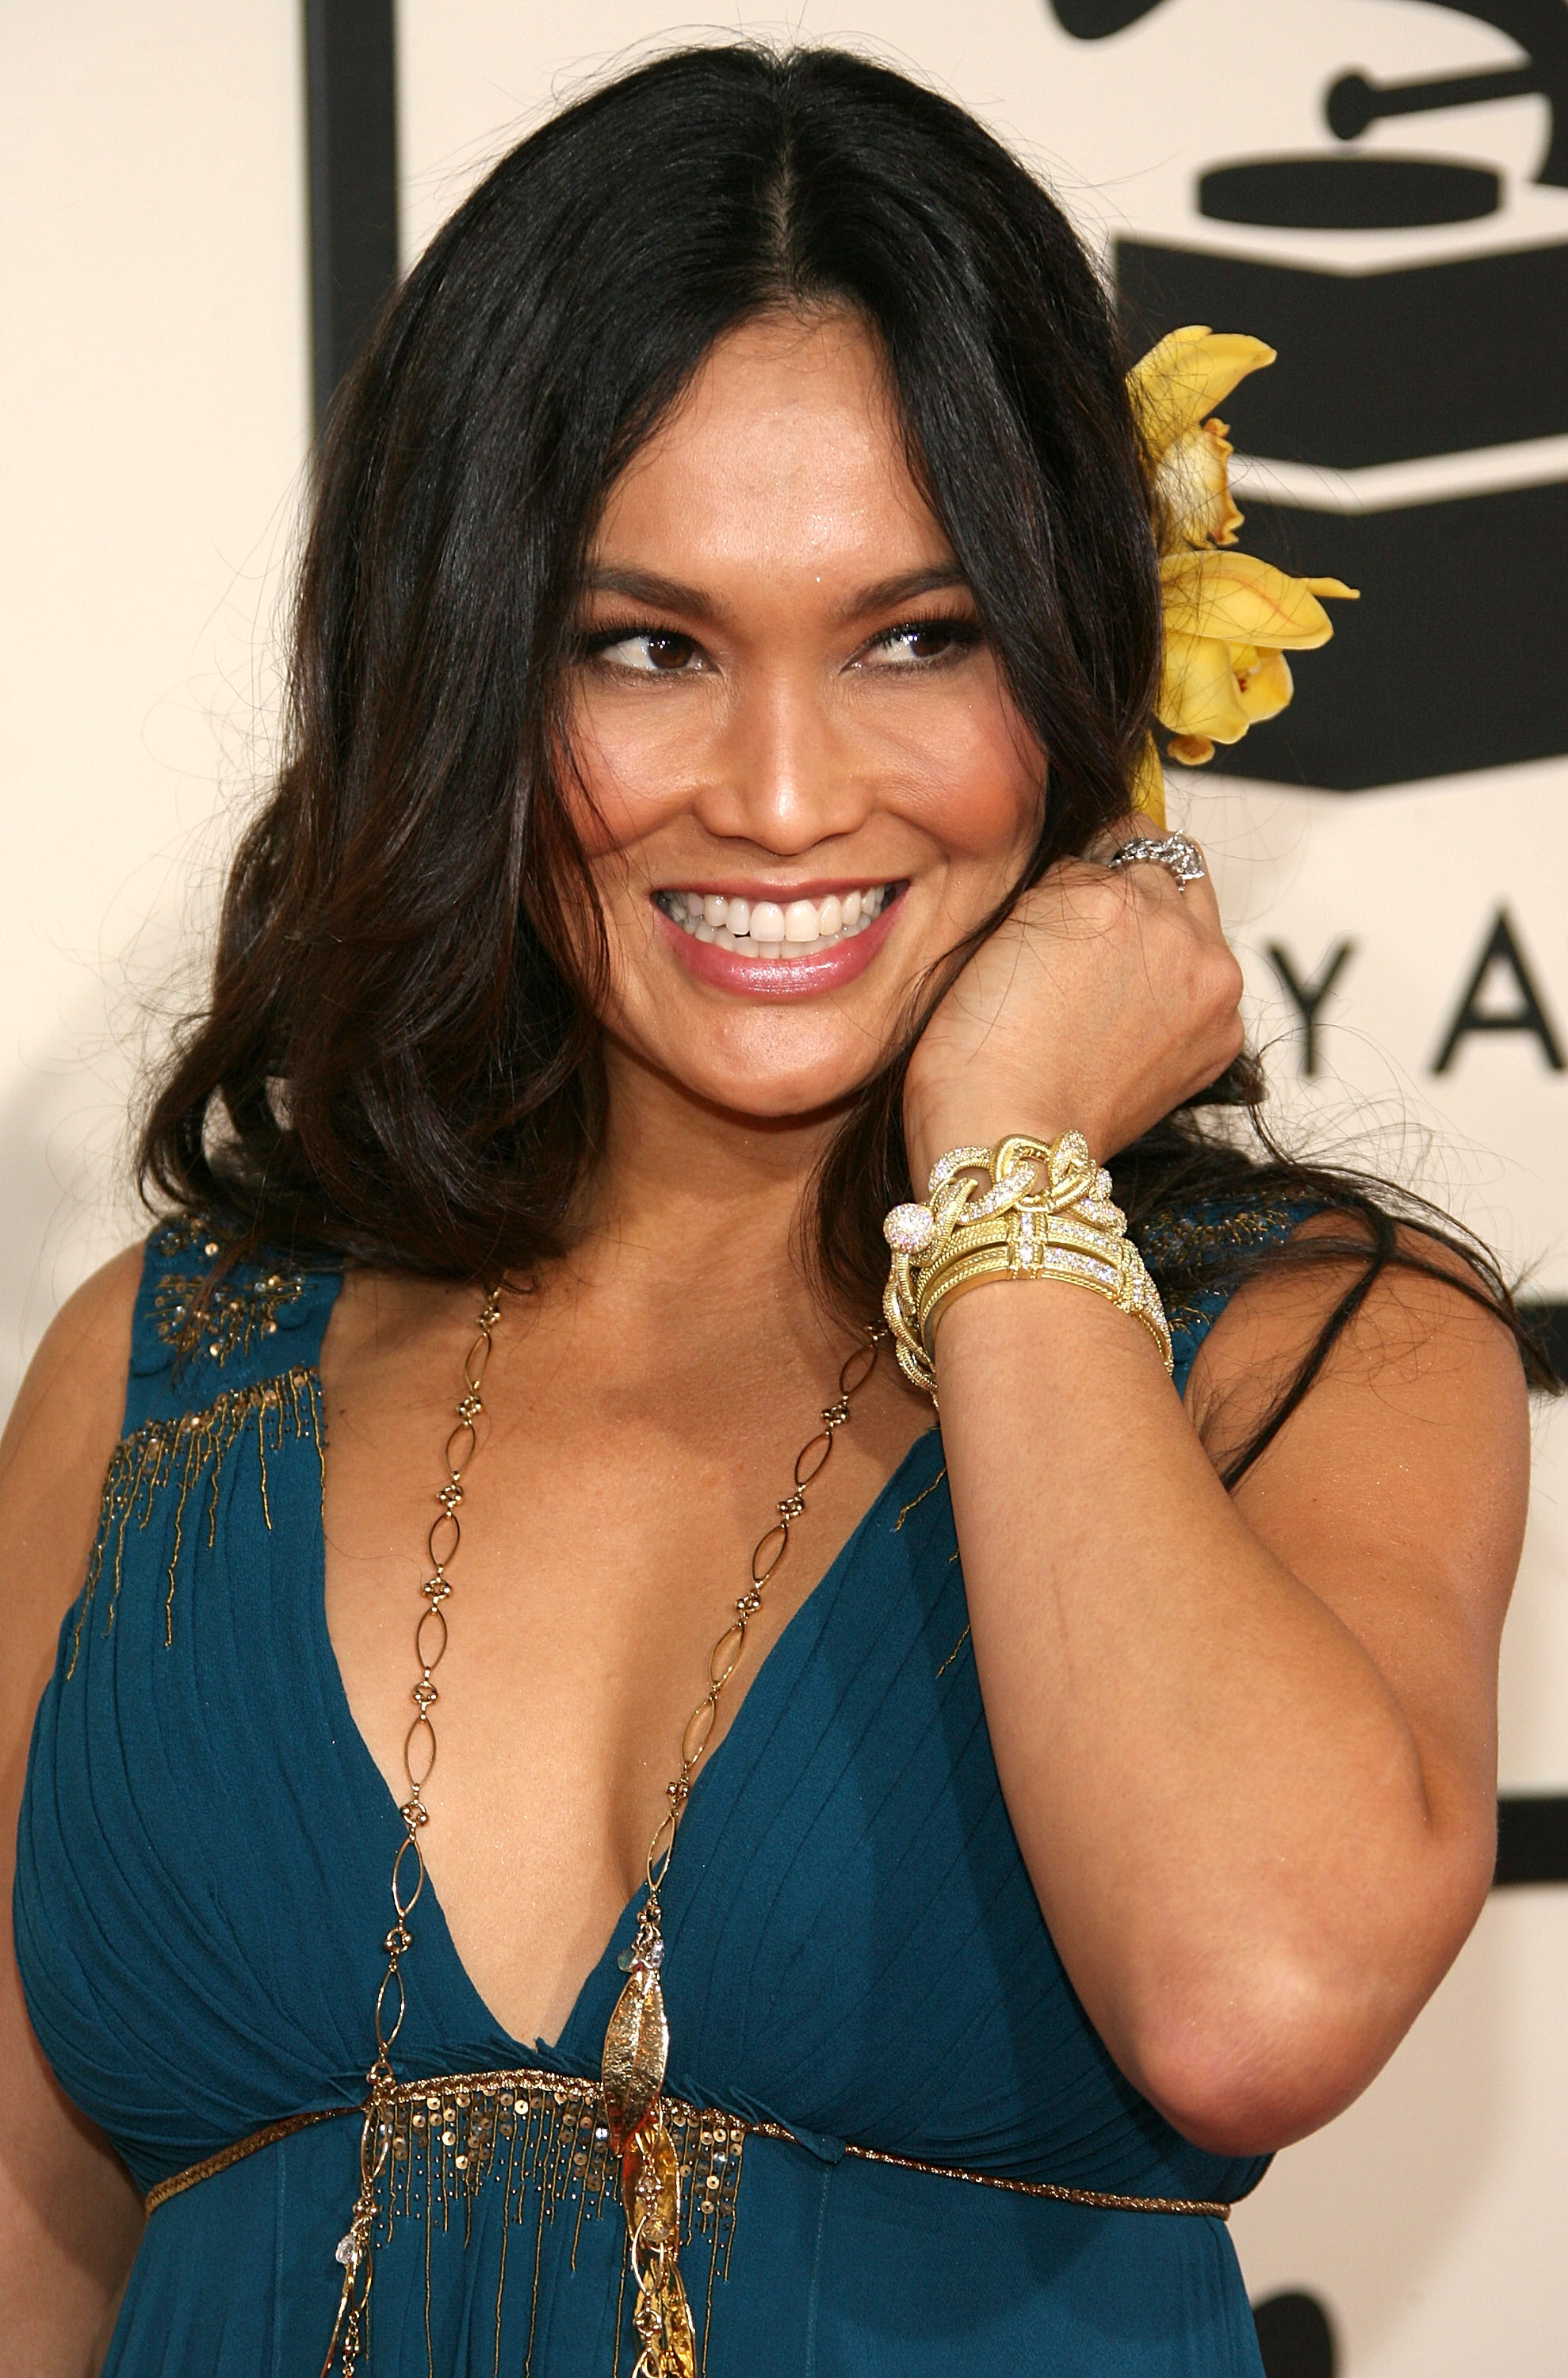 92899_by_Septimiu_Tia_Carrere-50th_Annual_Grammy_Awards_Arrivals-02_698_122_523lo.jpg